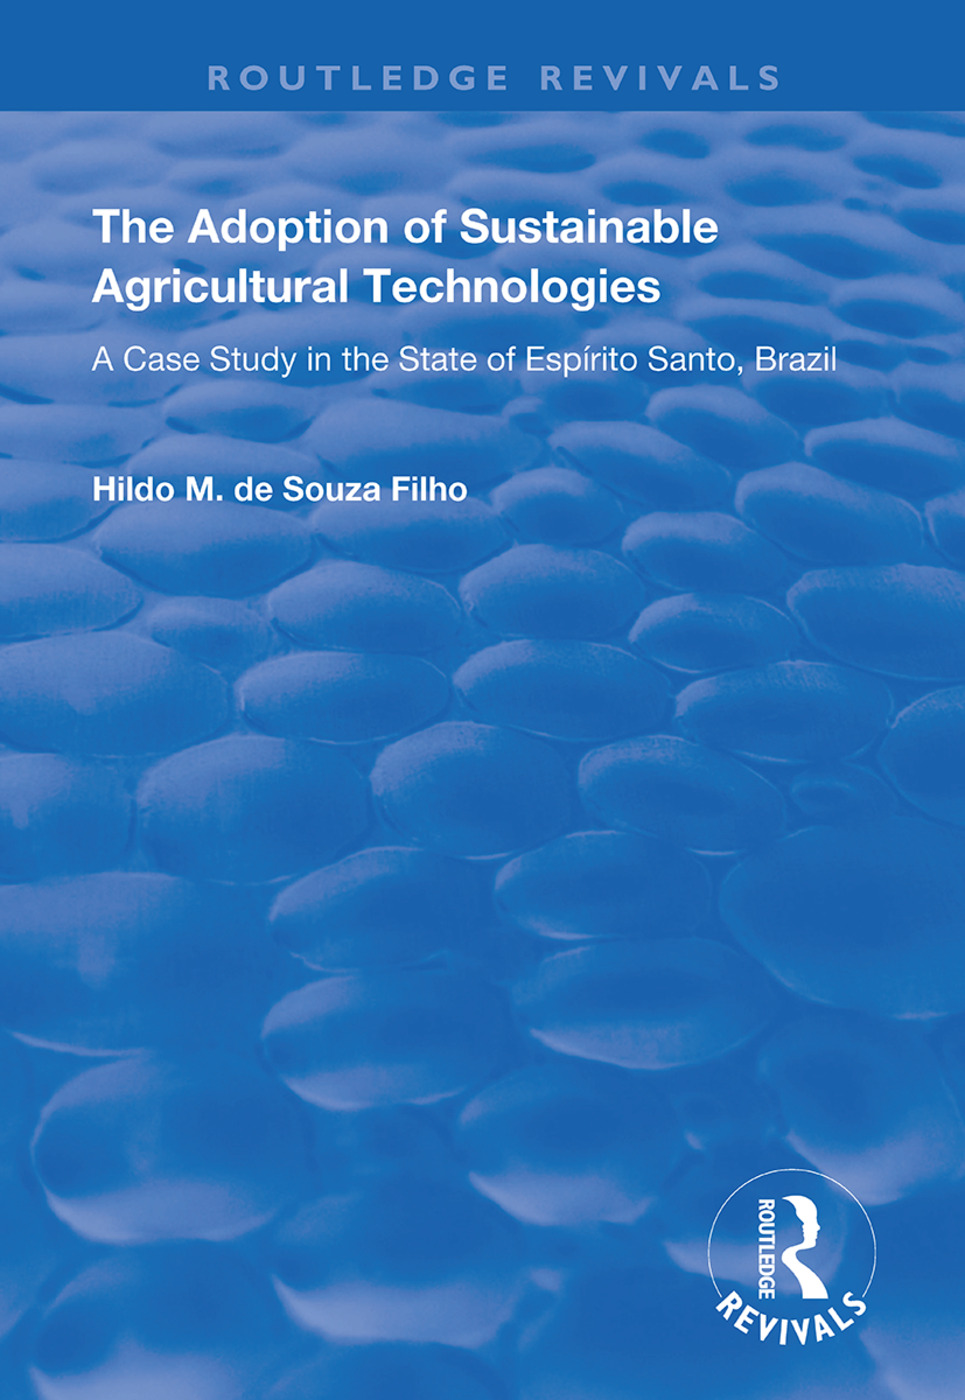 The Adoption of Sustainable Agricultural Technologies: A Case Study in the State of Espírito Santo, Brazil book cover